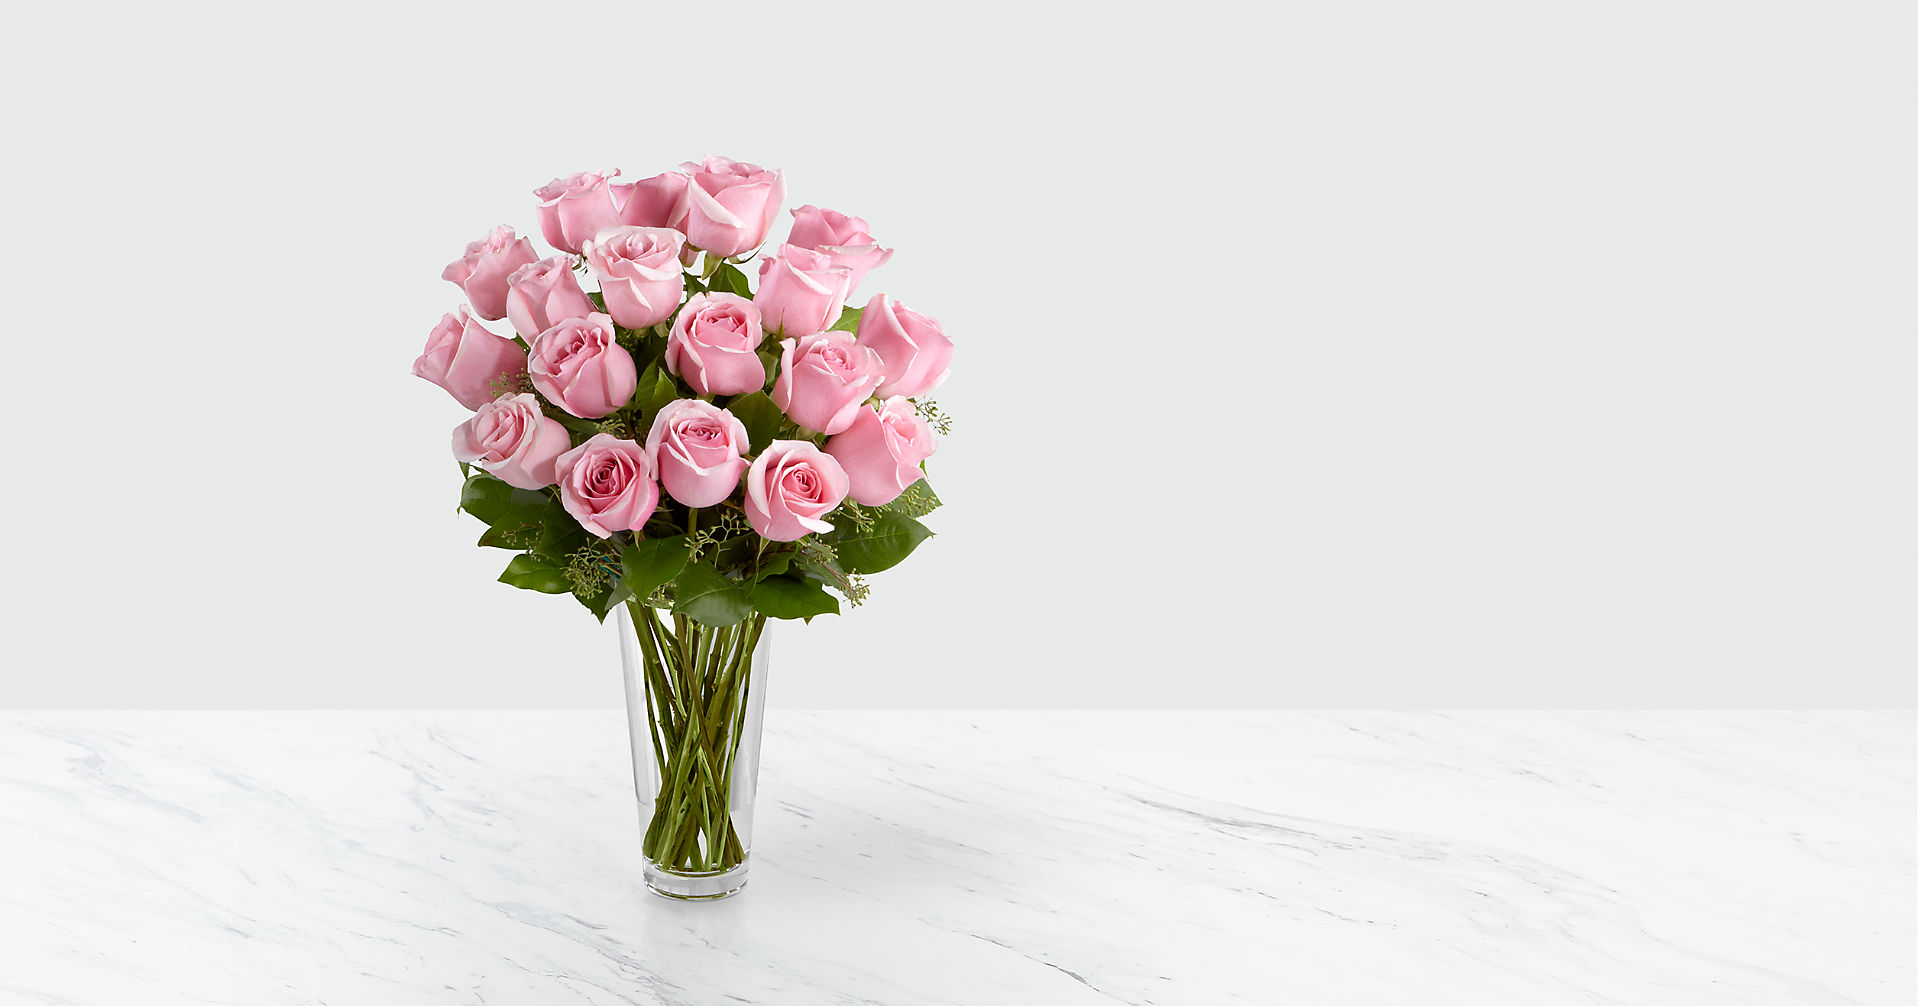 The Long Stem Pink Rose Bouquet - VASE INCLUDED - Image 1 Of 2